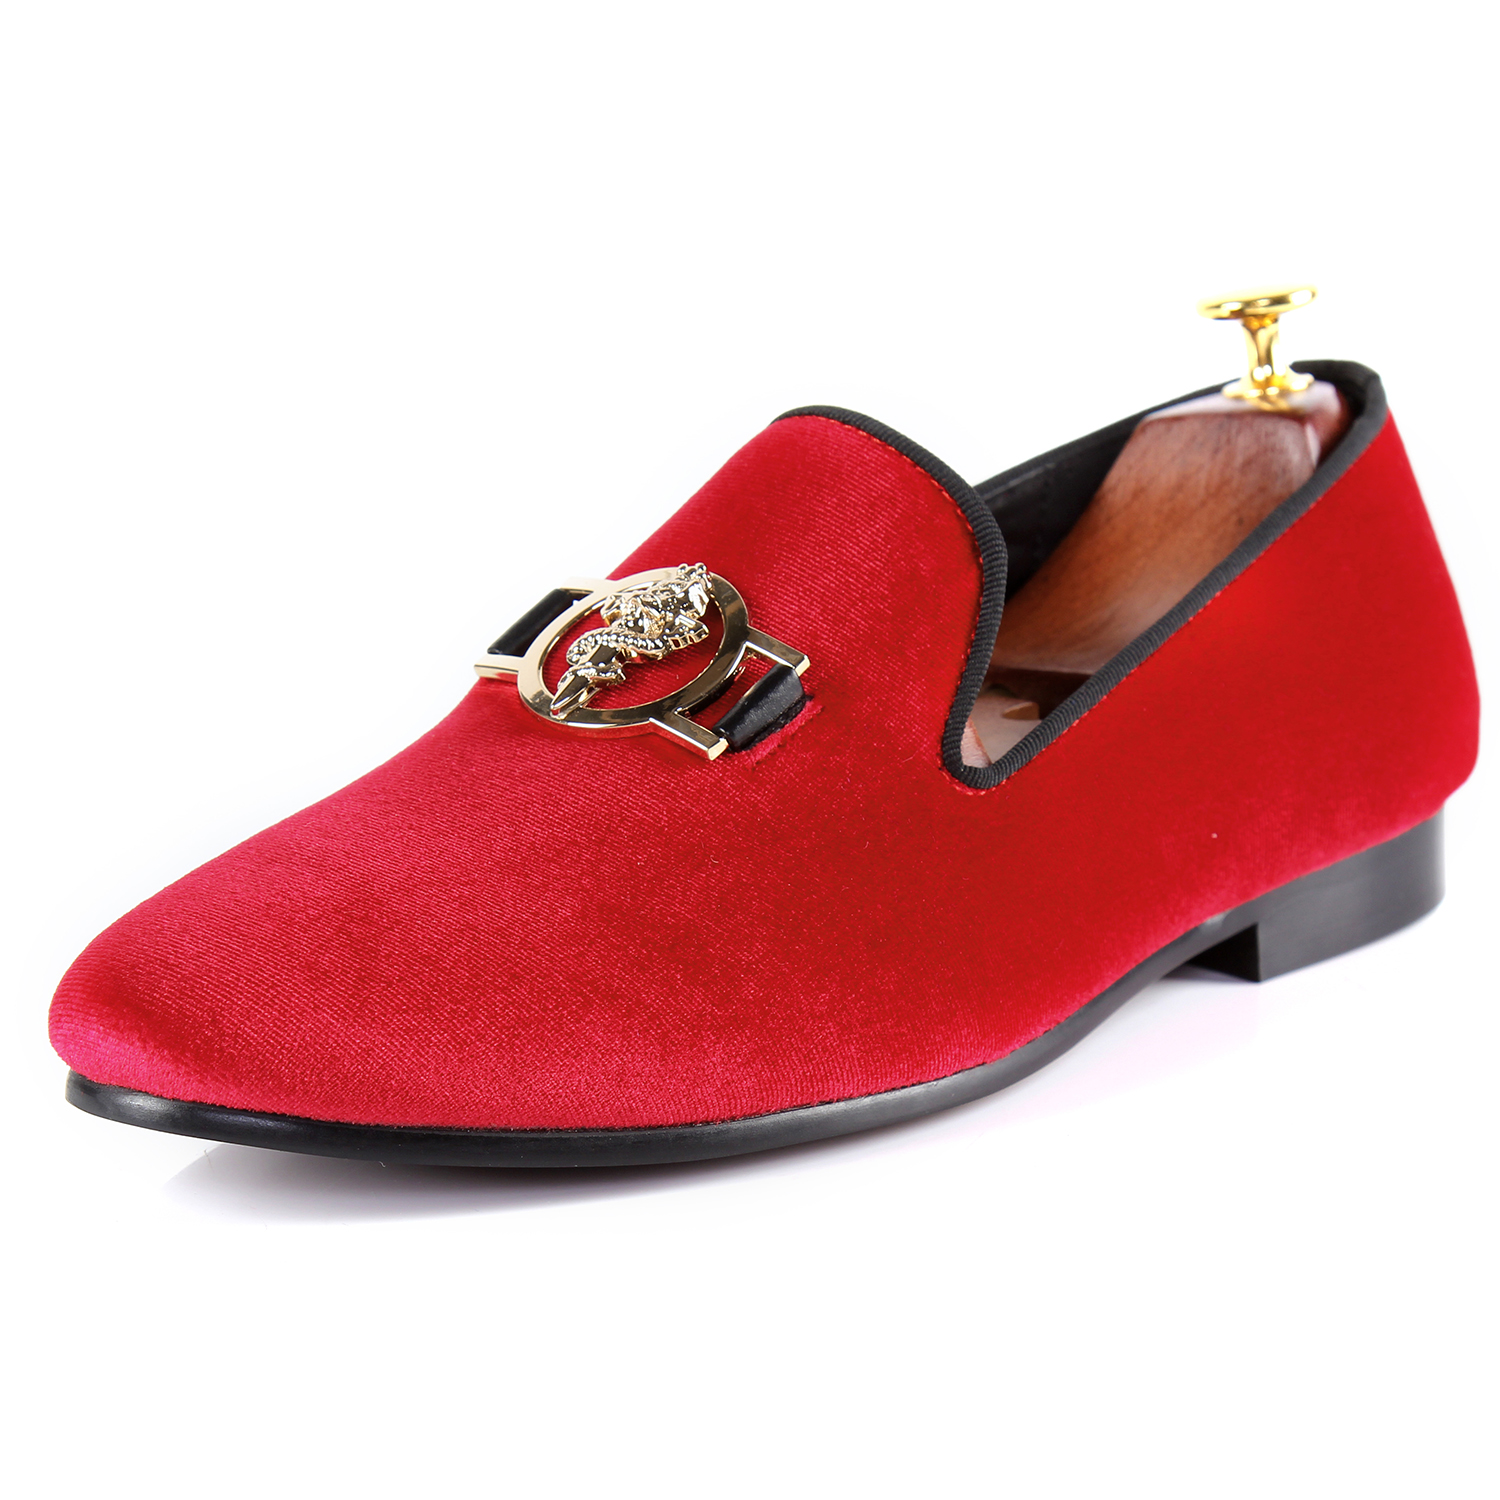 Harpelunde Men Velvet Slippers Buckle Strap Flat Shoes Red Driving Loafers Size 7-14 harpelunde buckle men wedding shoes red velvet dress loafers strap flats shoes size 7 14